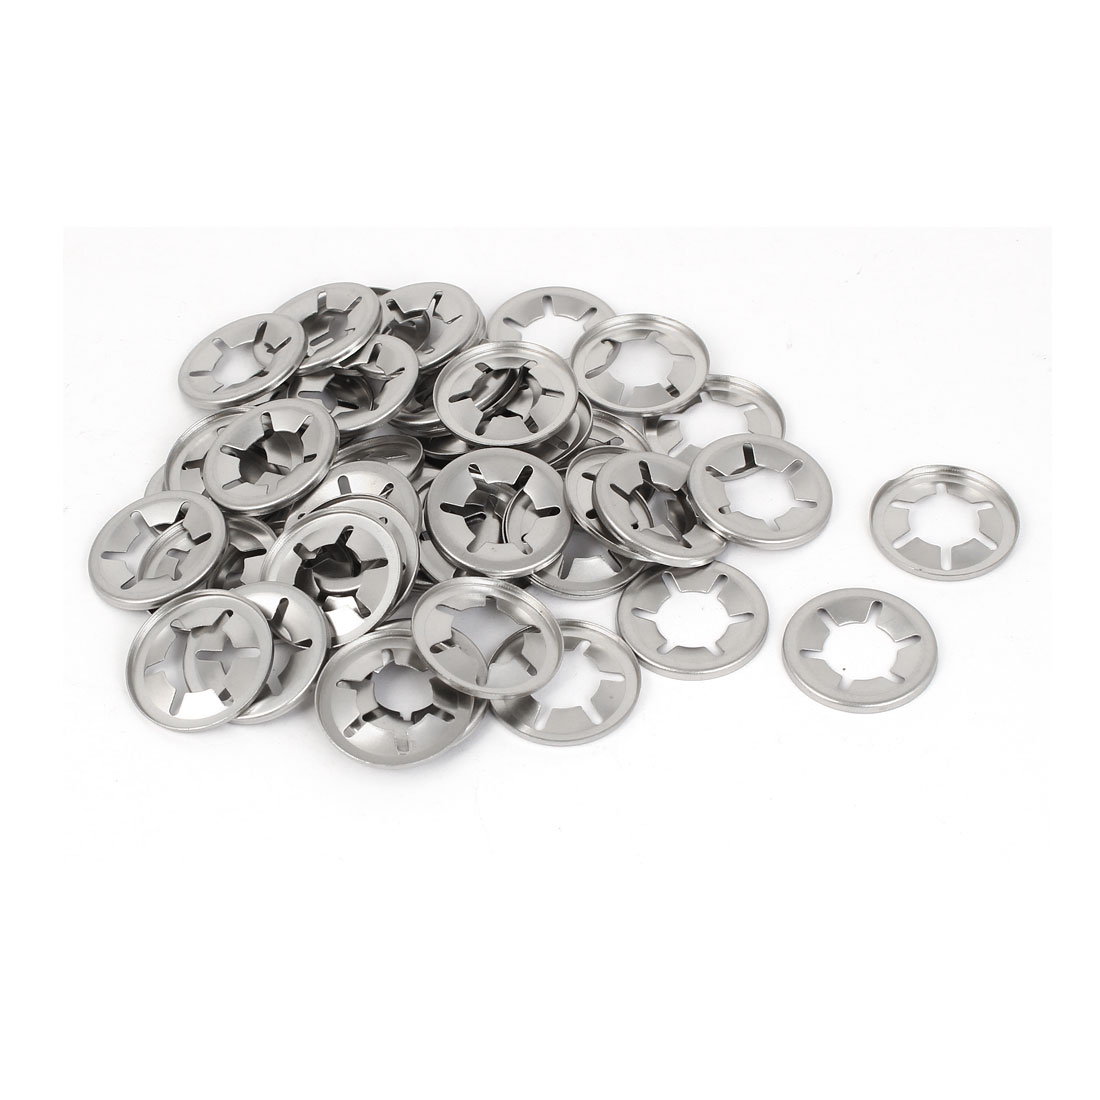 5mm Inner Diameter 304 Stainless Steel Starlock Internal Tooth Washers 50 Pcs